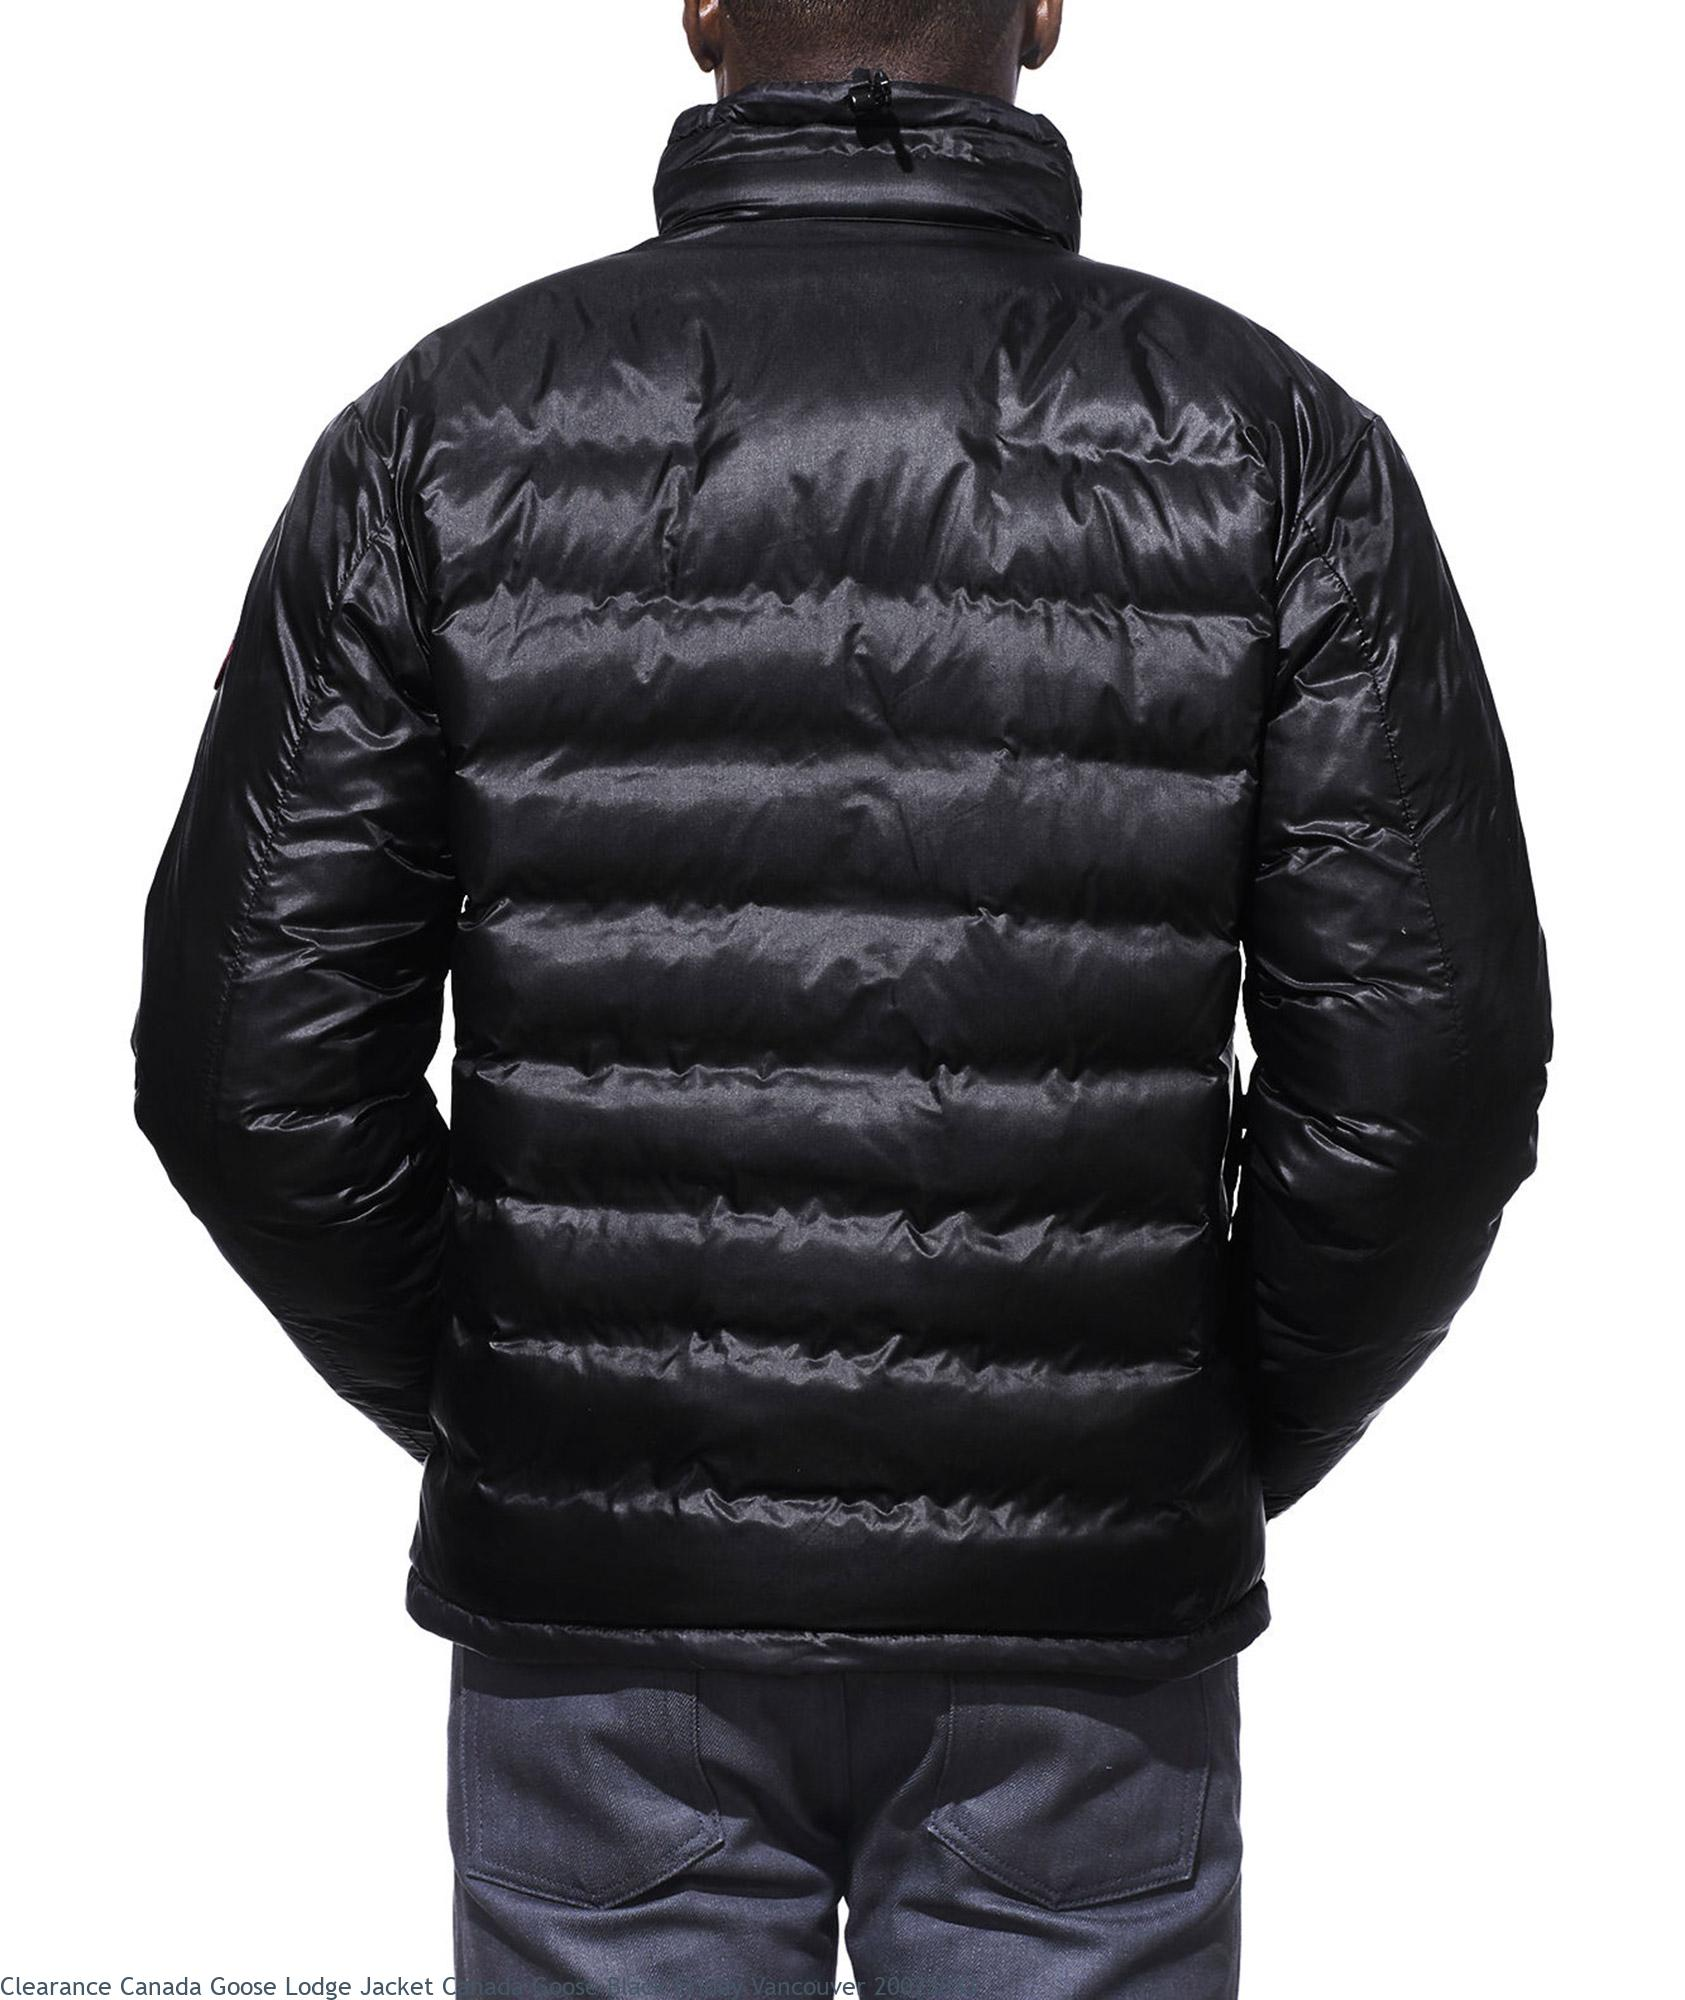 7bbbbfd1ffd Clearance Canada Goose Lodge Jacket Canada Goose Black Friday Vancouver  20023833